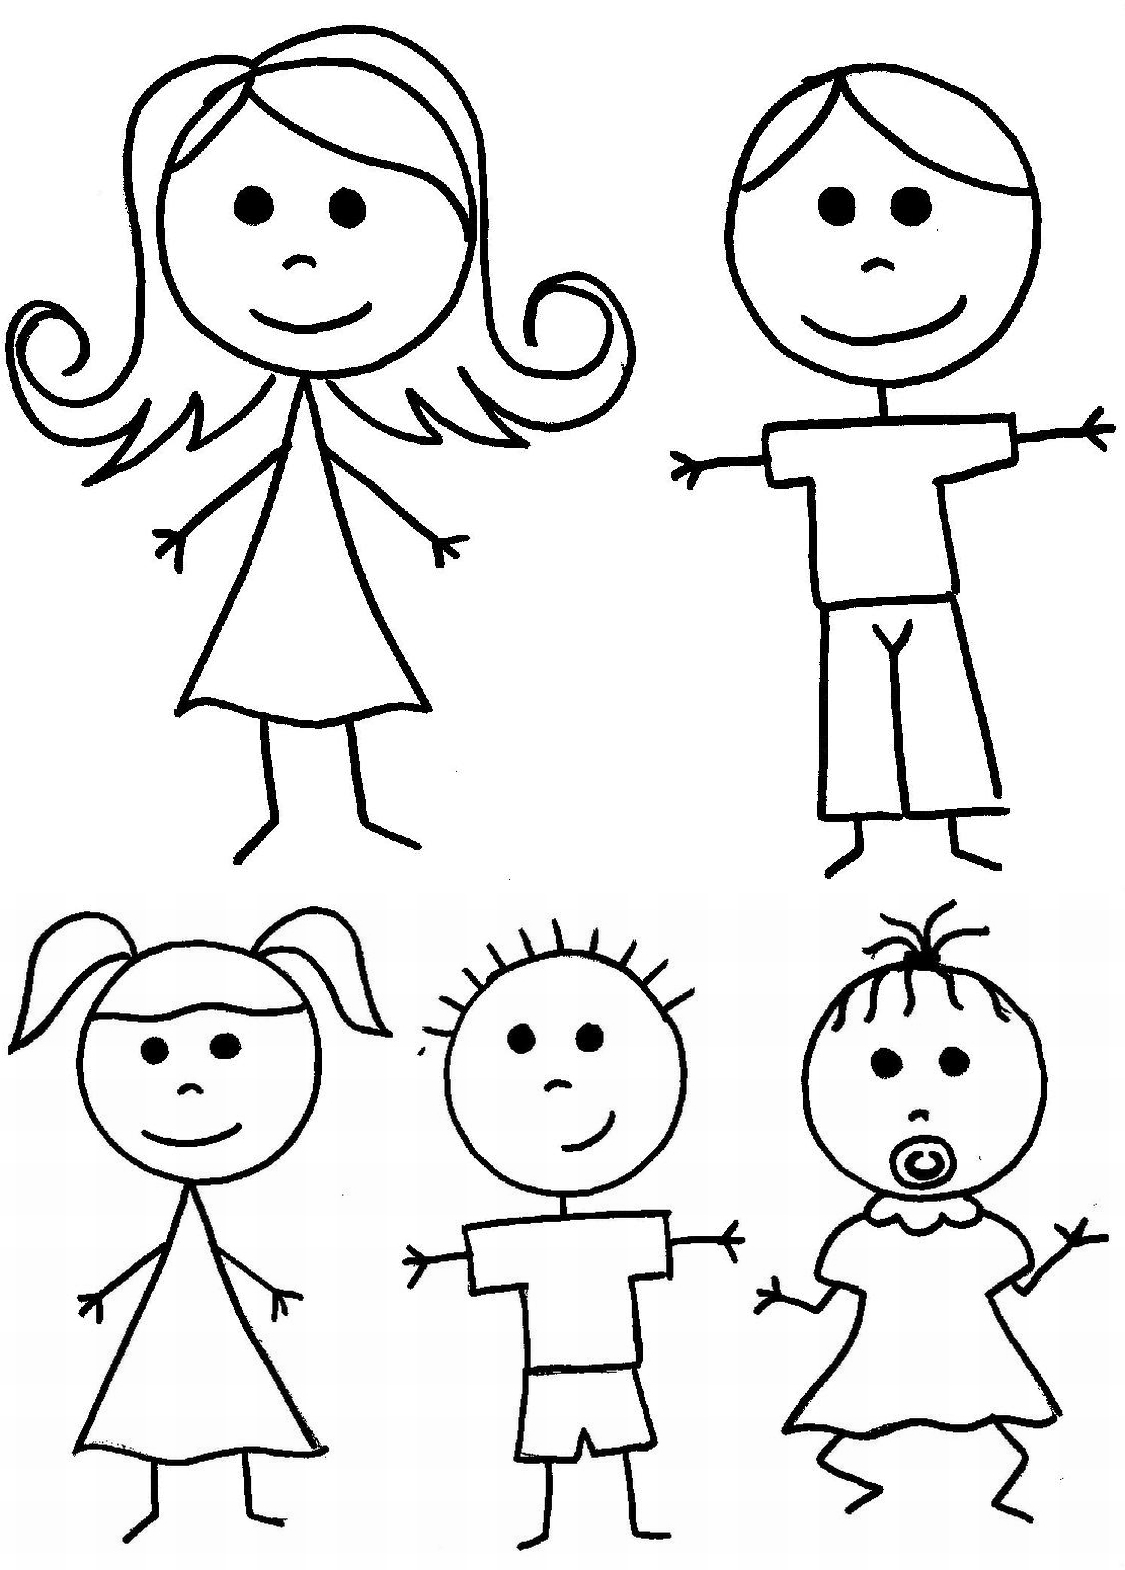 Free coloring pages of stickman family